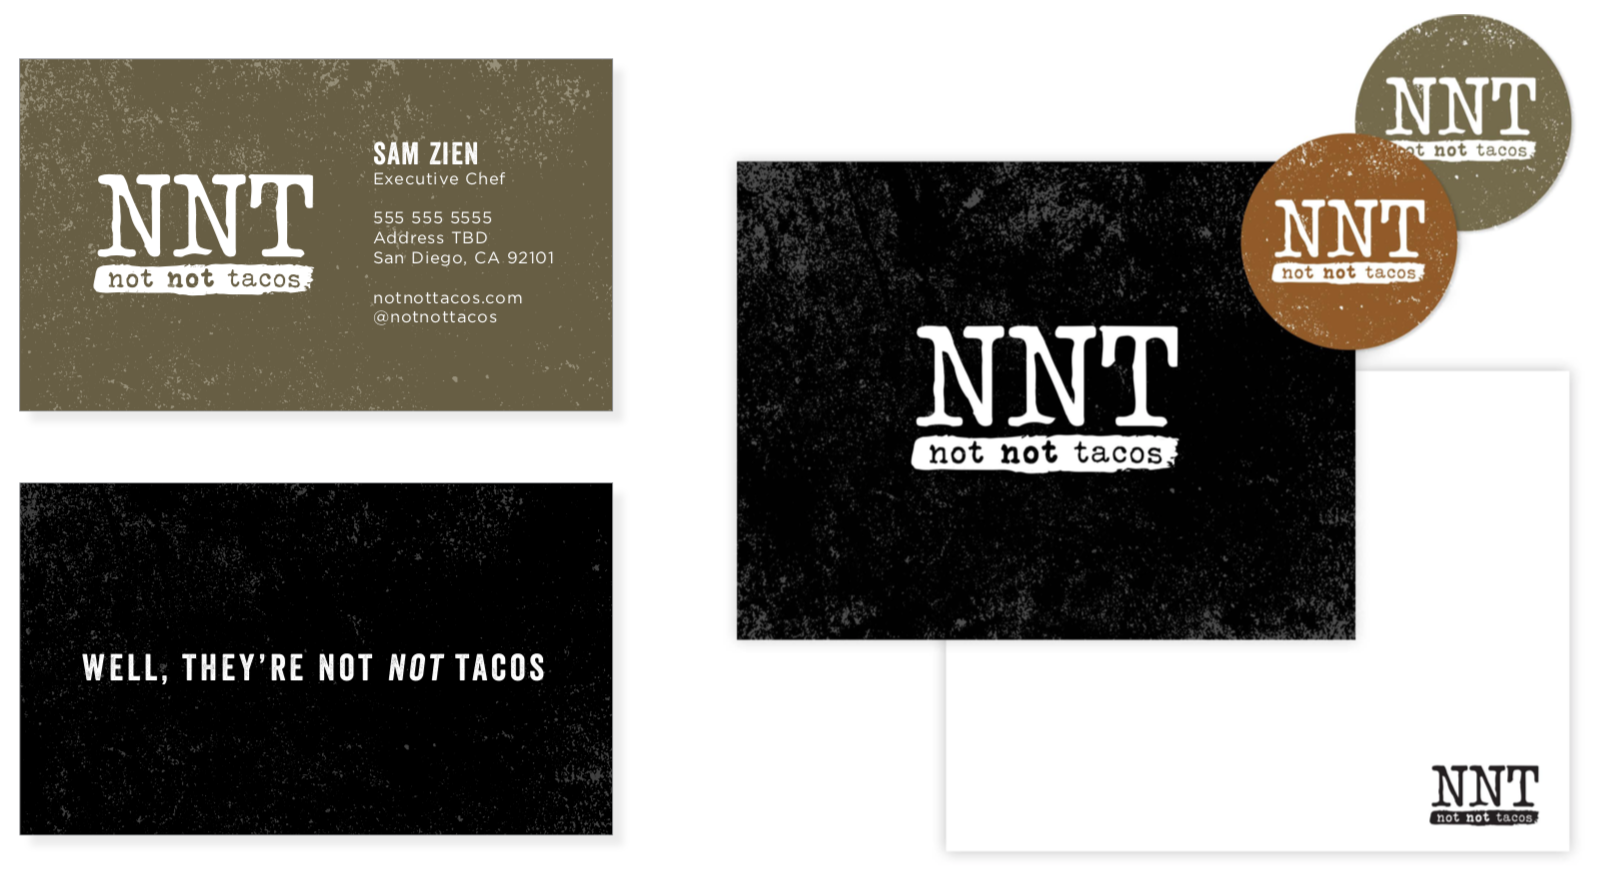 Not Not Tacos Brand Identity by Gretchen Kamp who is a branding specialist and designer based in Astoria, Queens, New York and San Diego, California